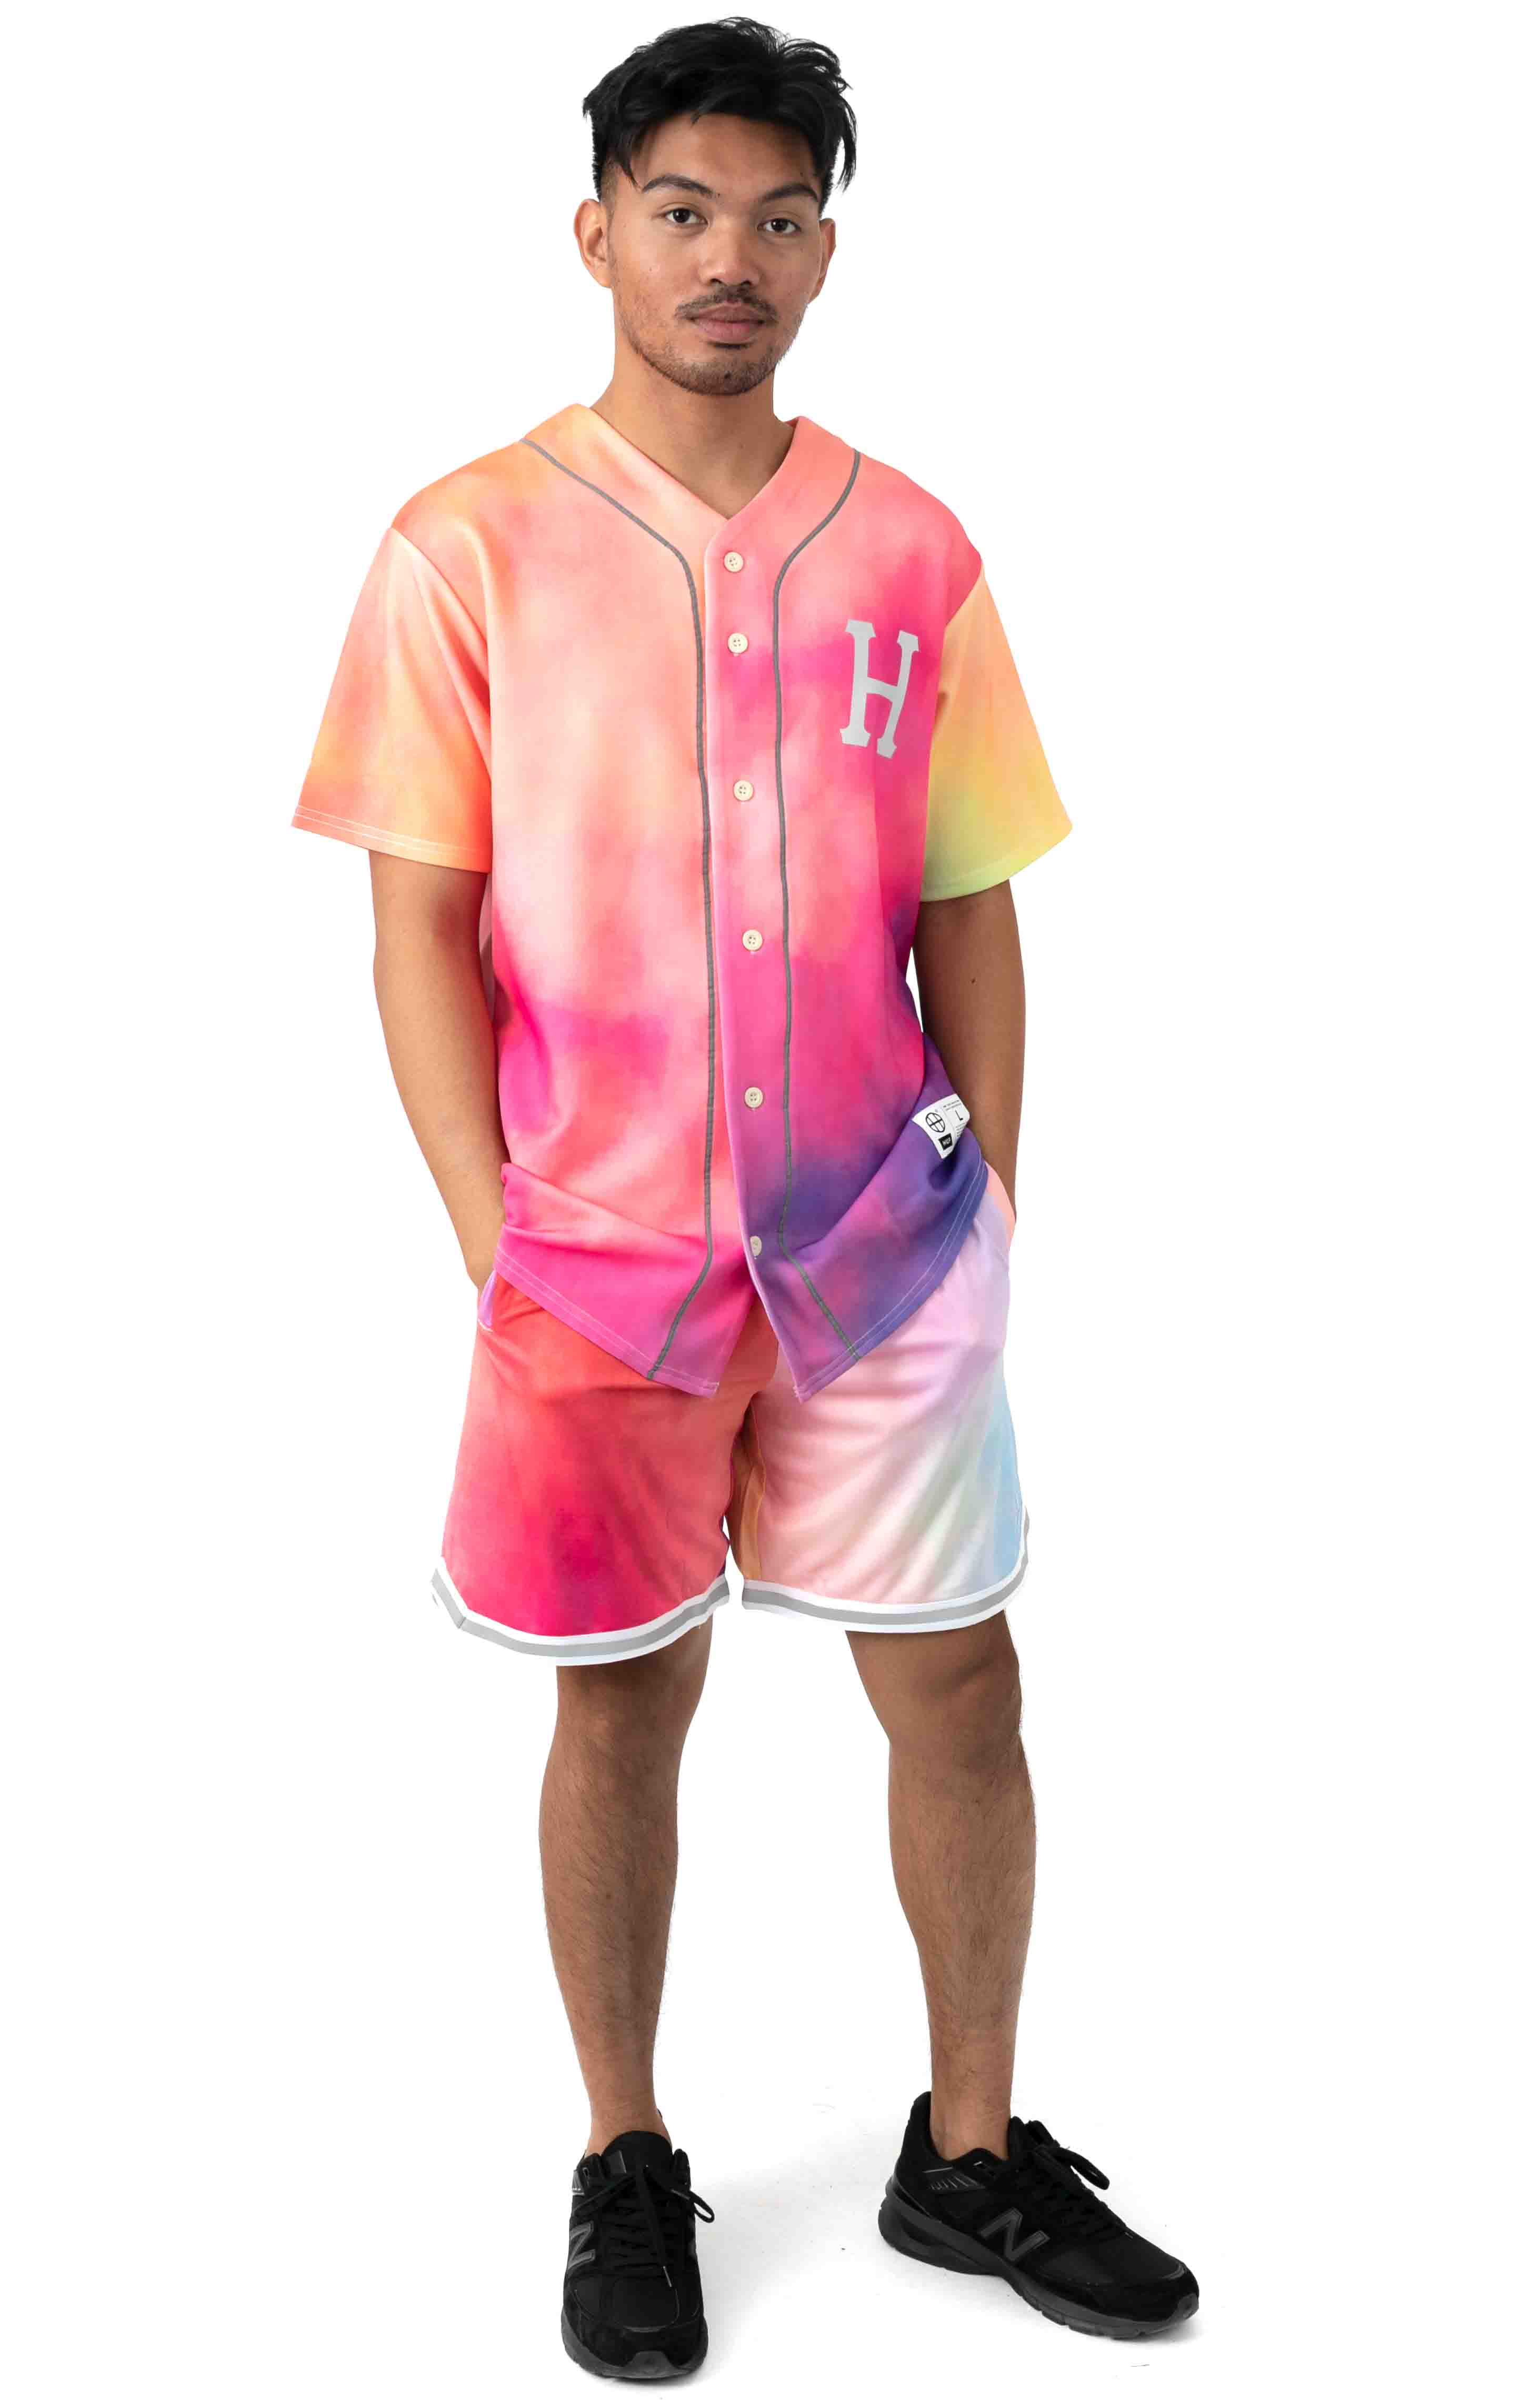 Classic H Reflex Basketball Shorts - Coral Pink 4